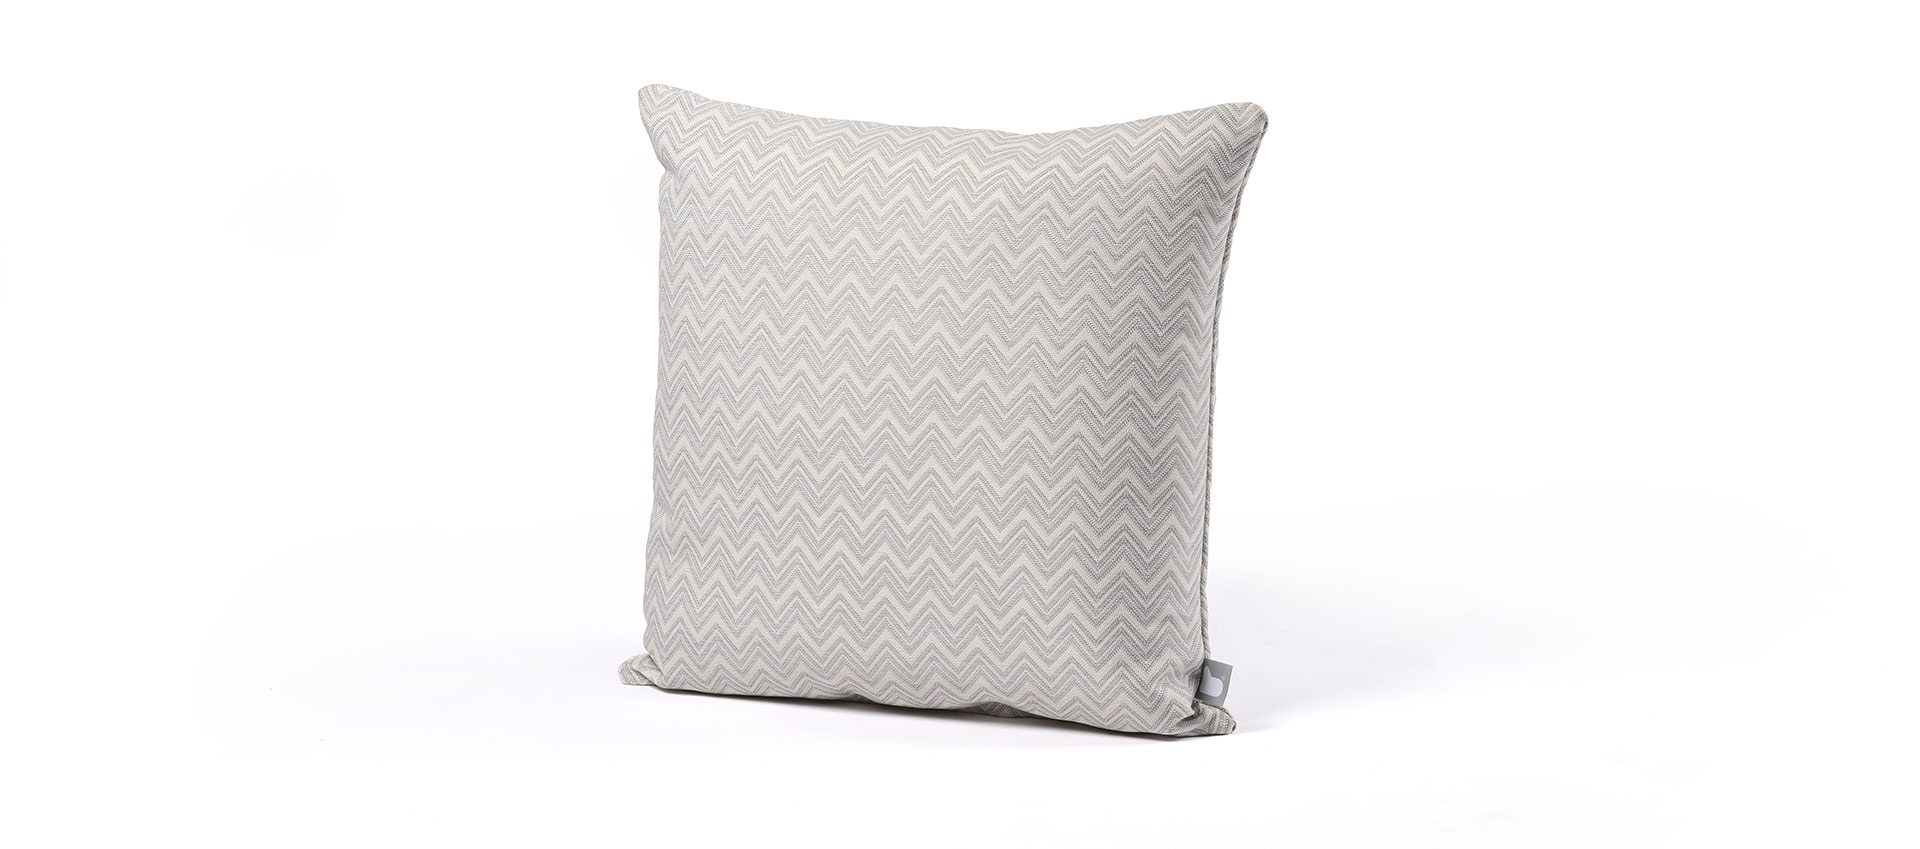 Maze Lounge - Outdoor Scatter Cushion - Polines Grey